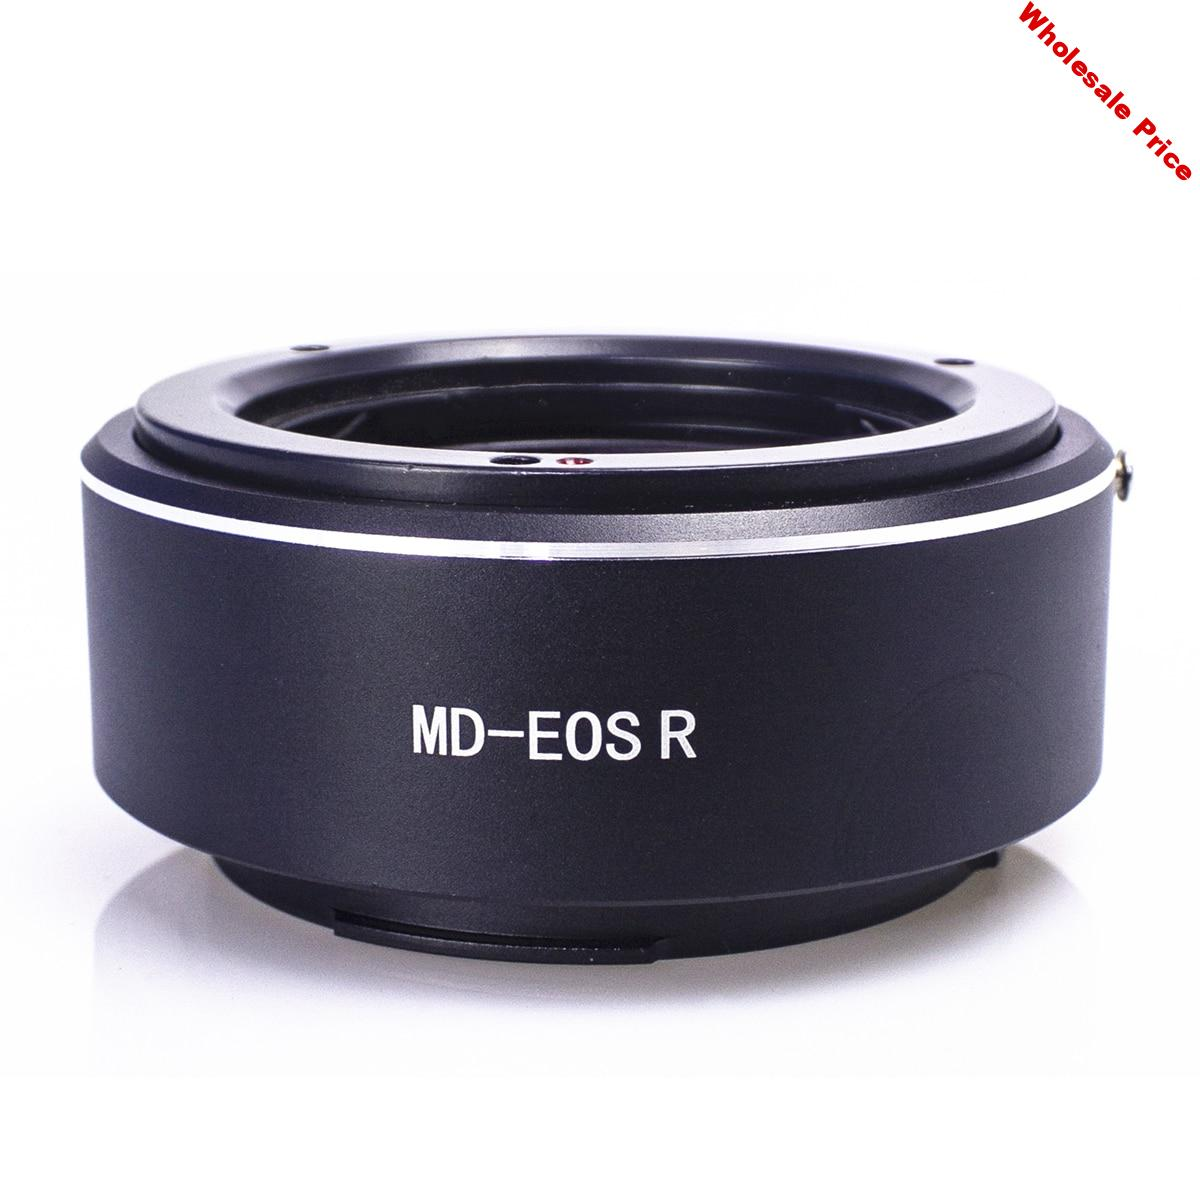 Lens Adaptor Mount Ring for Minolta MD Lens and Canon EOS R RP R5 R6 EOSR RF Camera Body